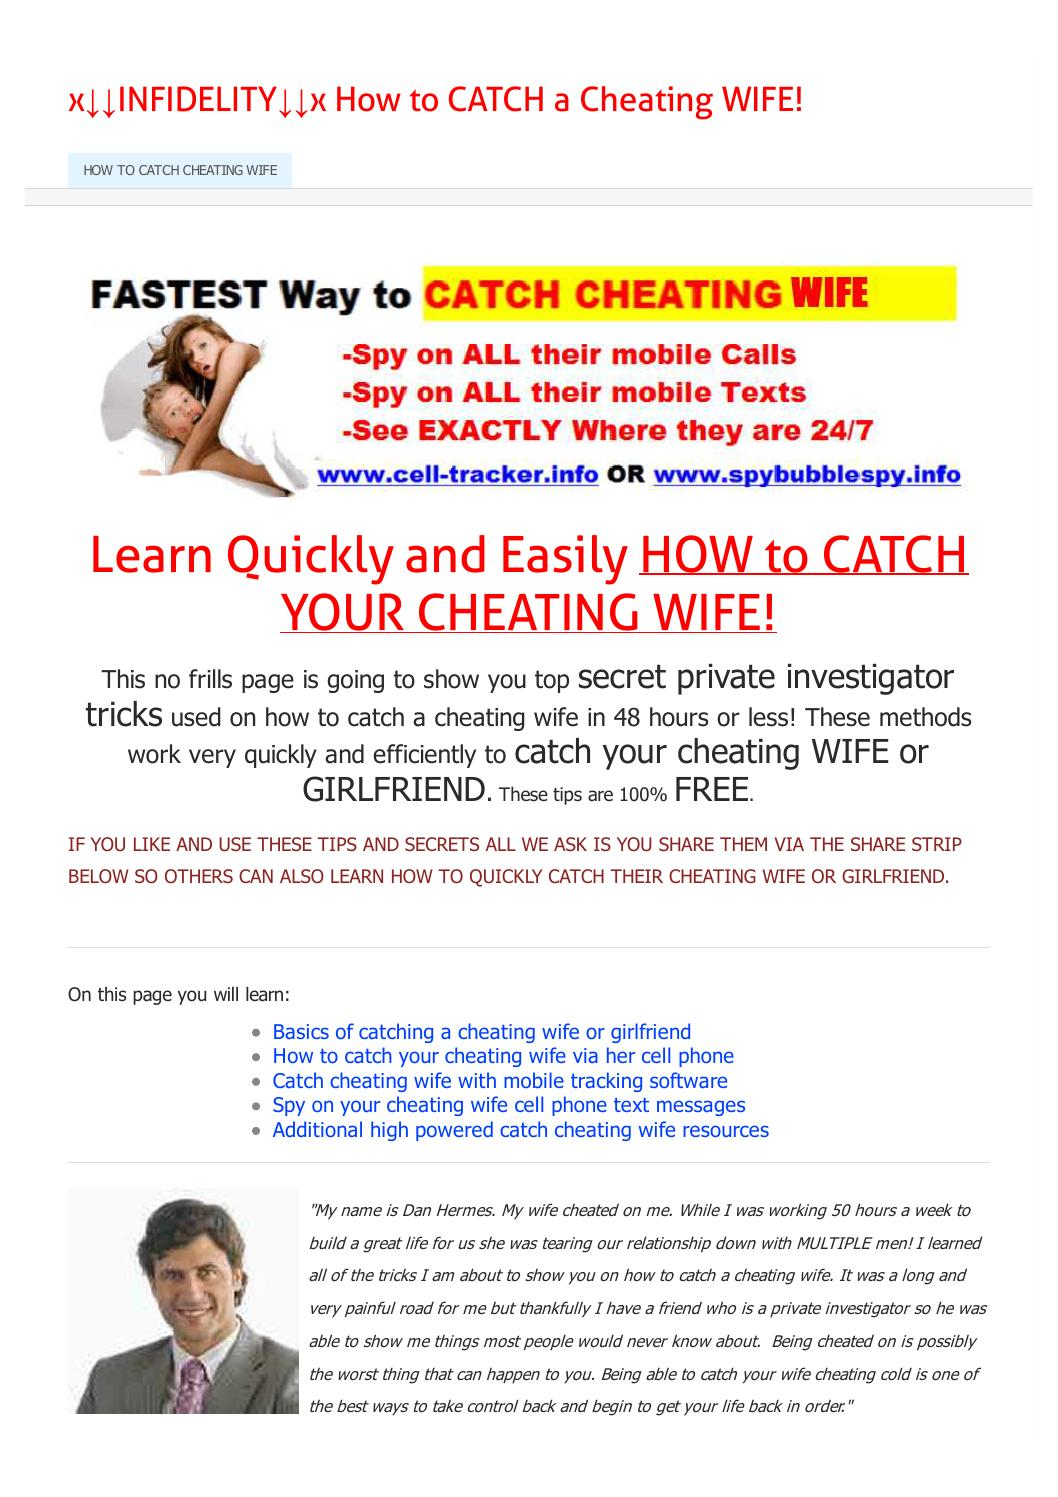 How to catch cheating wife